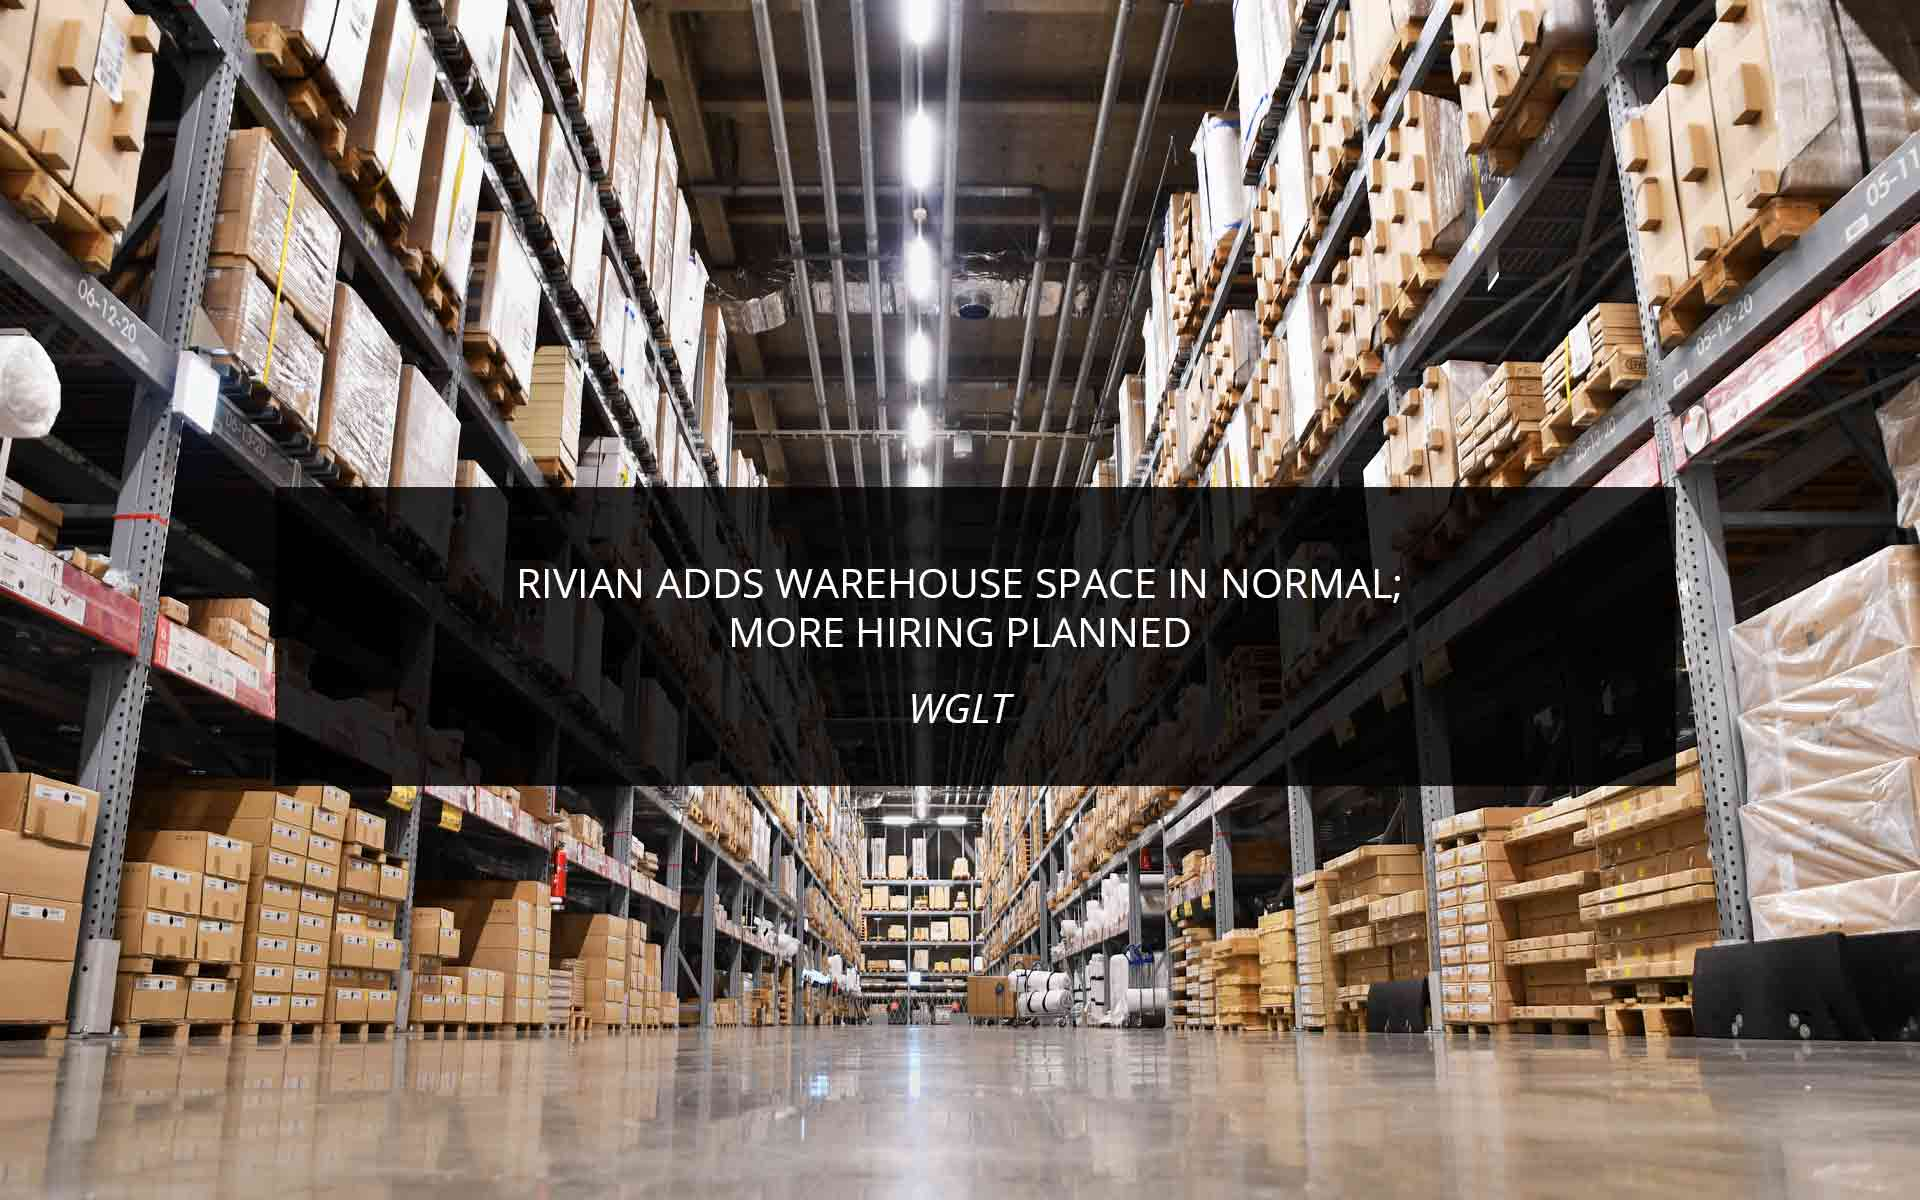 Rivian Adds Warehouse Space In Normal; More Hiring Planned